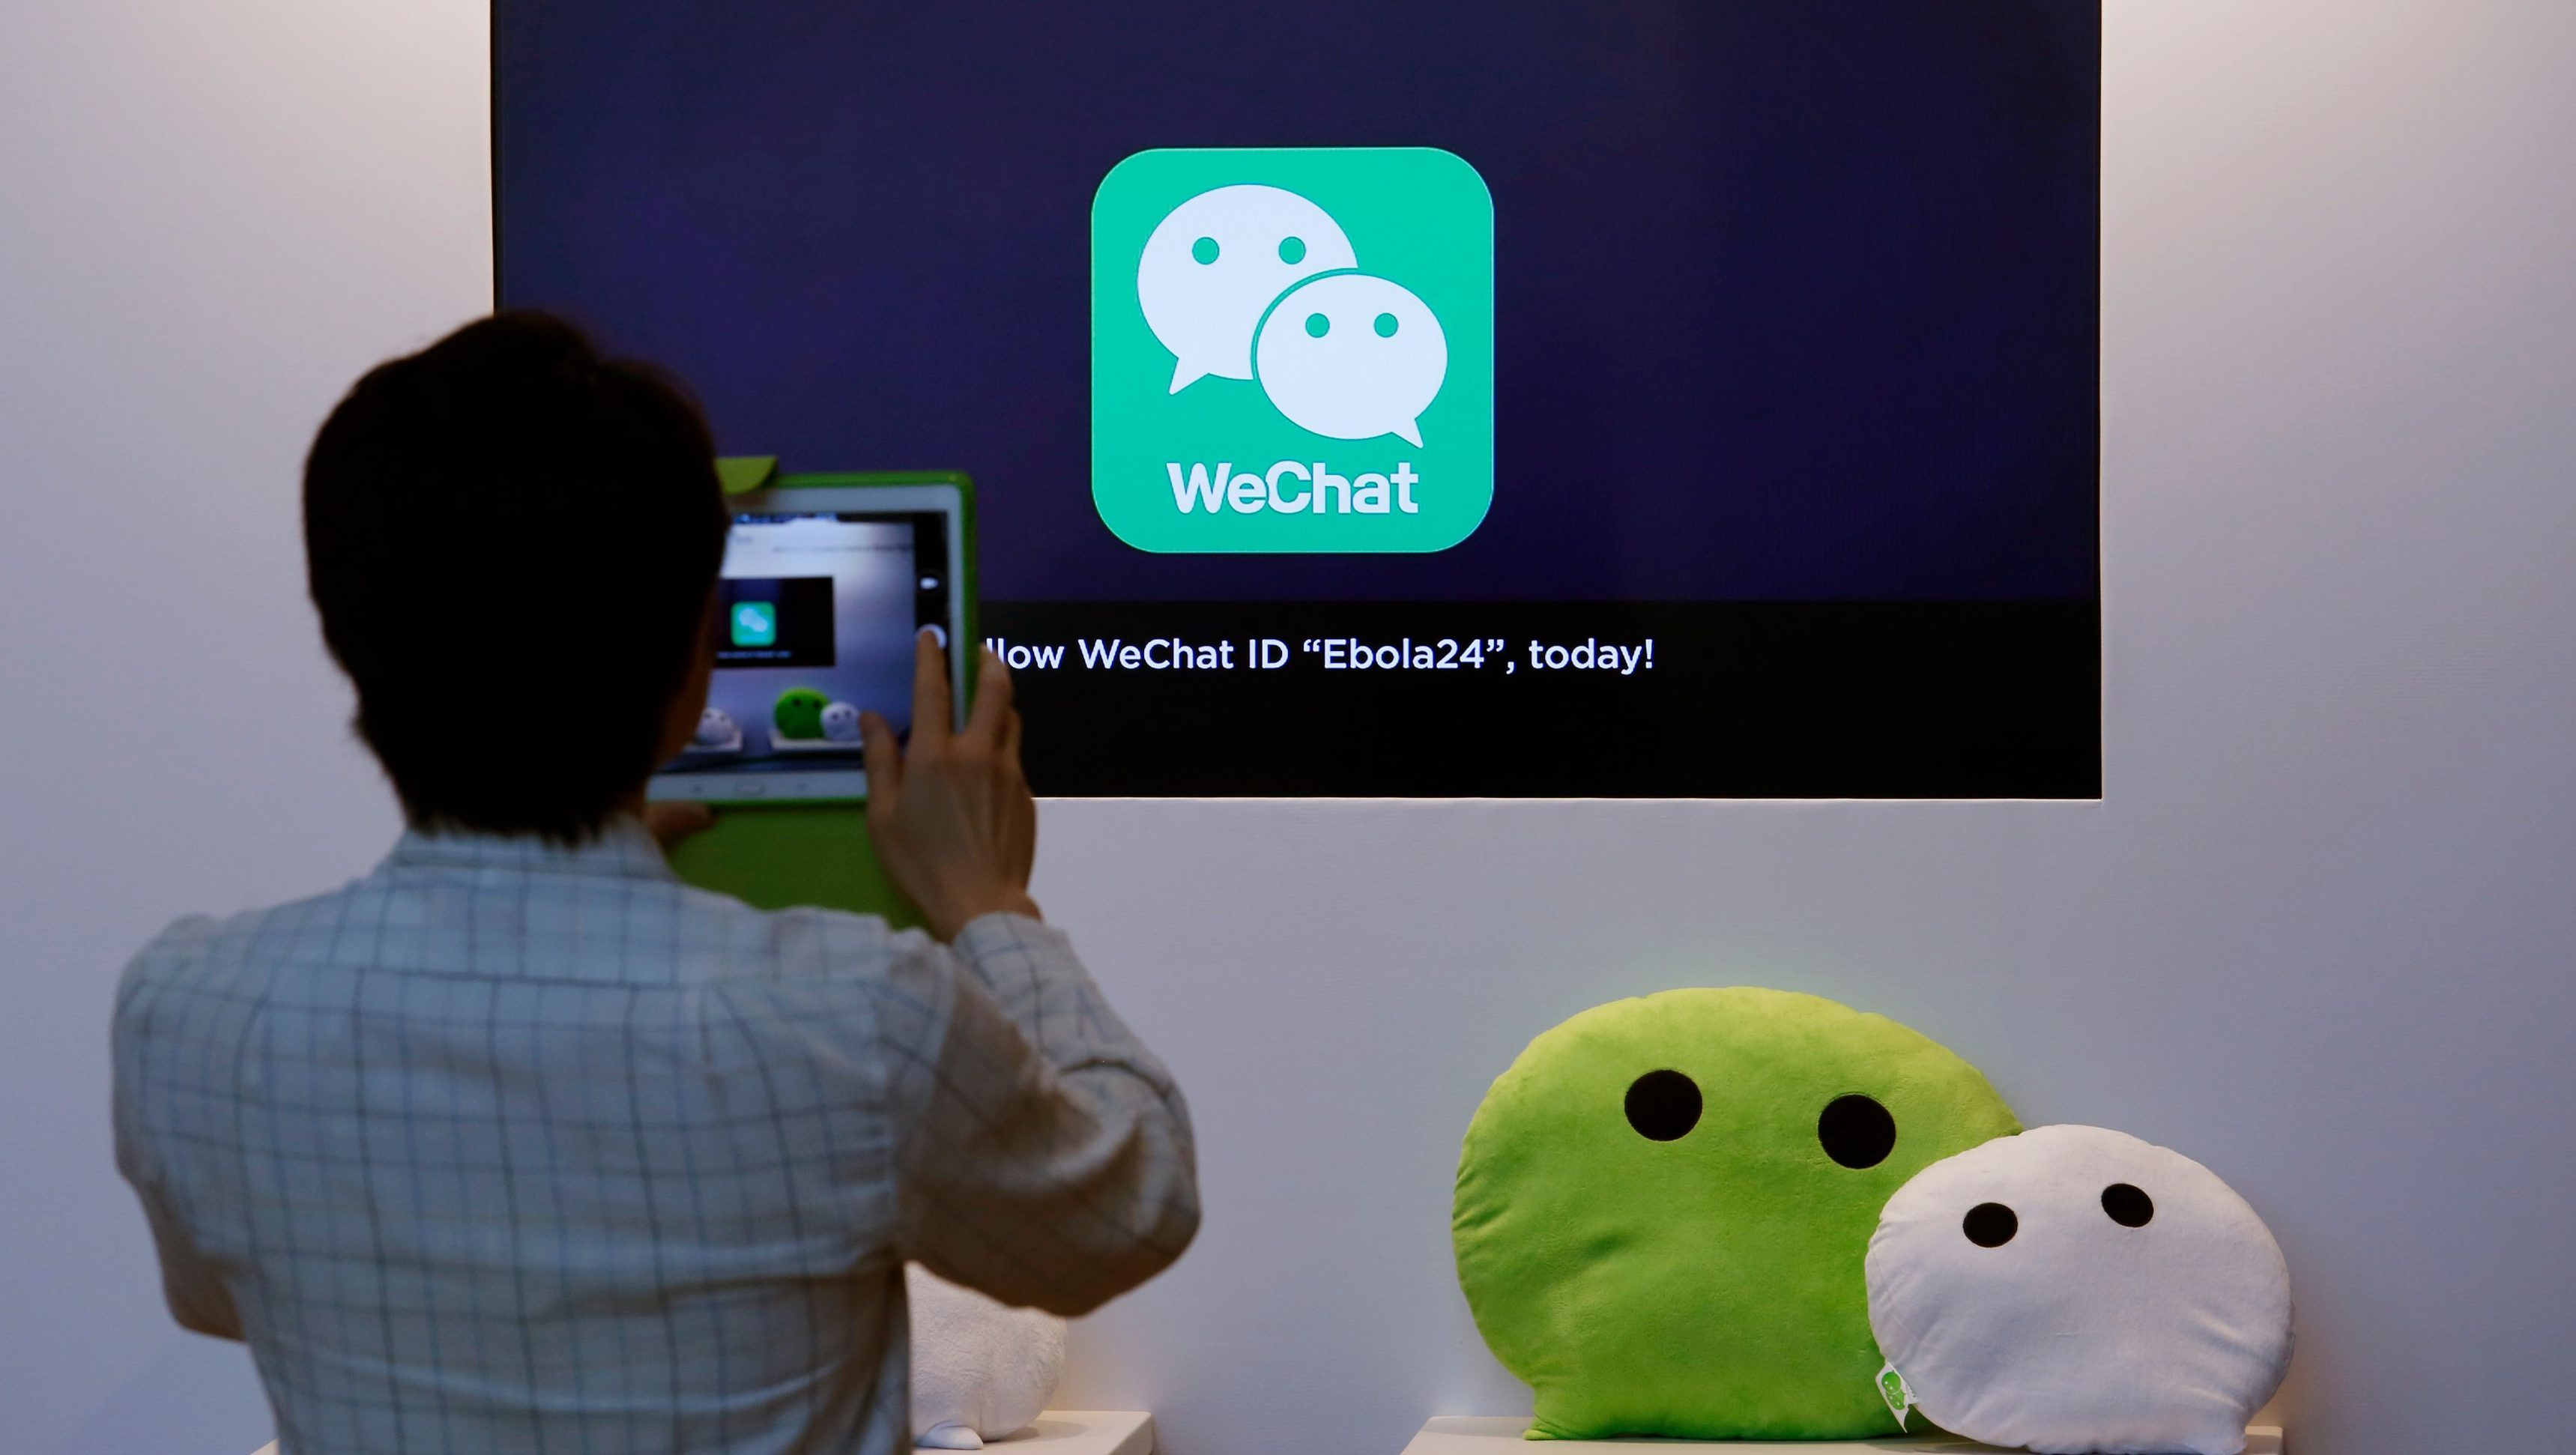 A man takes a photograph of a counter promoting WeChat, a product of Tencent, displayed at a news conference announcing the company's results in Hong Kong March 18, 2015. Tencent Holdings Ltd , China's biggest social network and online entertainment firm, posted a 51 percent gain in fourth-quarter net income, missing estimates, as sharing and content costs took a bite out of healthy revenue growth. REUTERS/Bobby Yip (CHINA - Tags: BUSINESS SCIENCE TECHNOLOGY HEALTH) - GM1EB3I1G4401